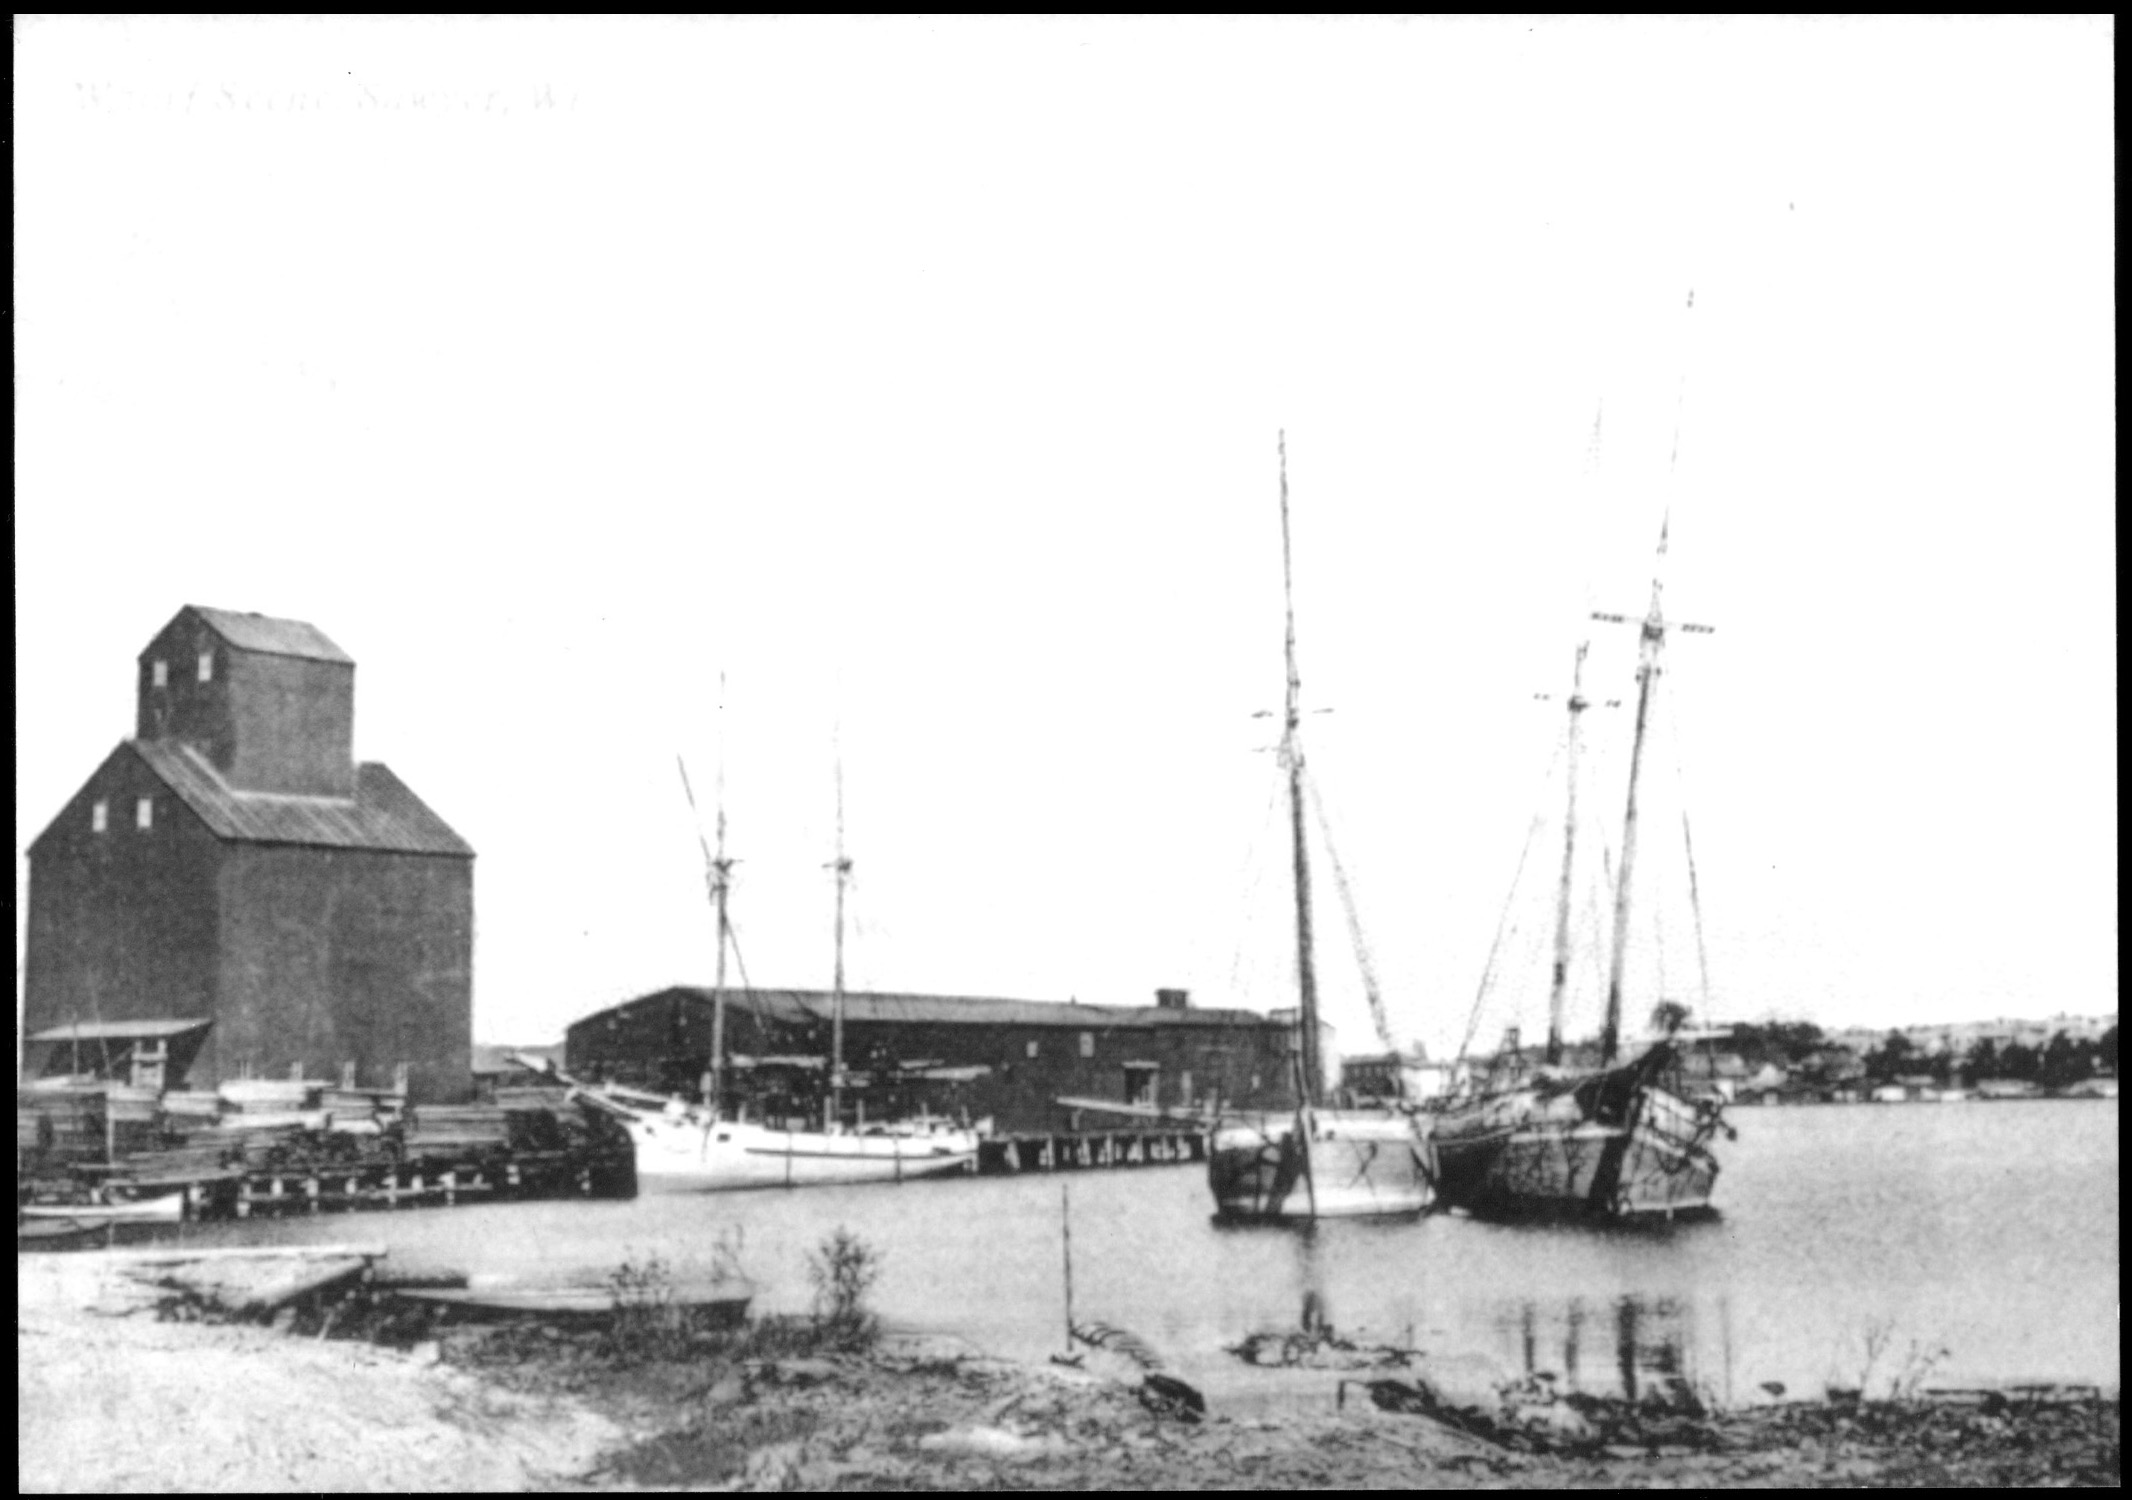 Teweles and Brandeis Grain Elevator and warehouses on the large dock along the working waterfront (Door County Historical Museum)